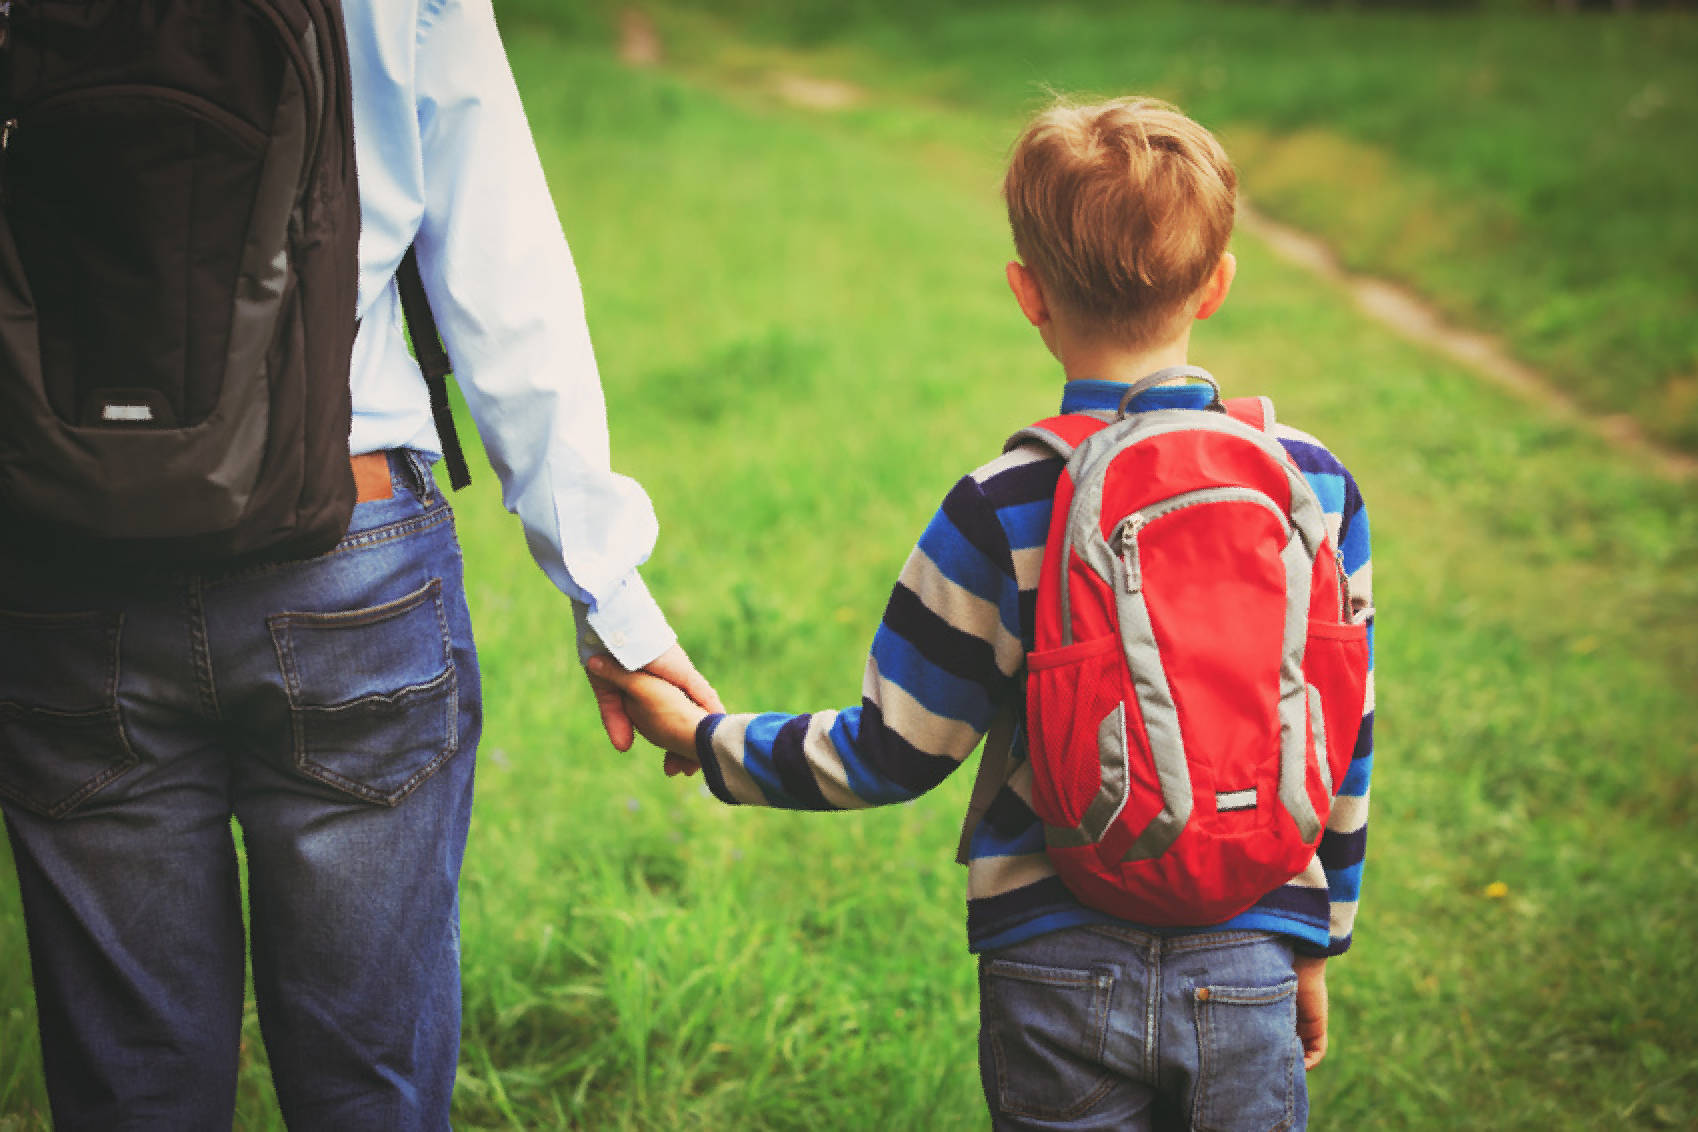 Father walking son to school or daycare. Copyright nadezhda1906 - fotolia